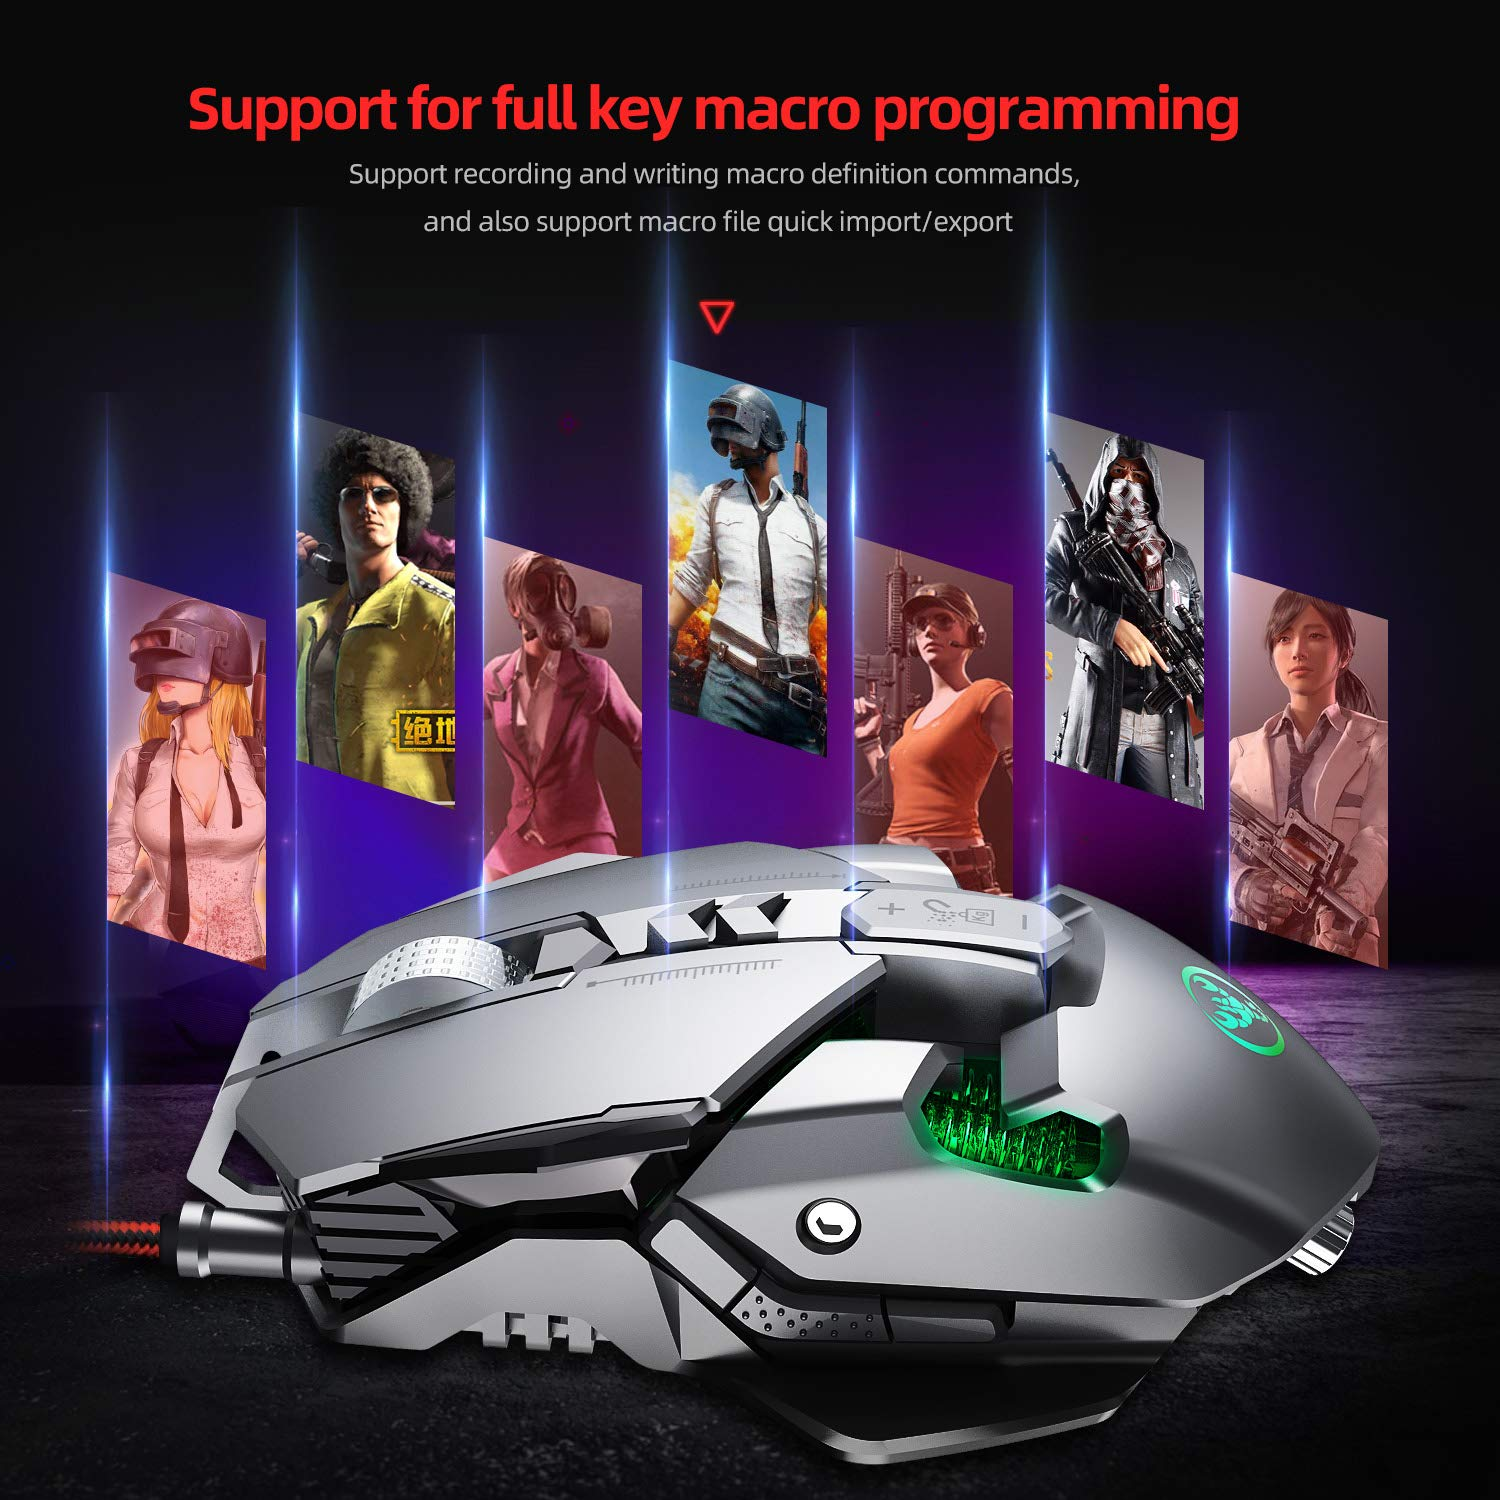 MeterMall New for ZERODATE 3200 DPI USB Wired Gaming Mouse 7 Programmable Buttons Mechanical ro Definition Programming Game Mouse Gray